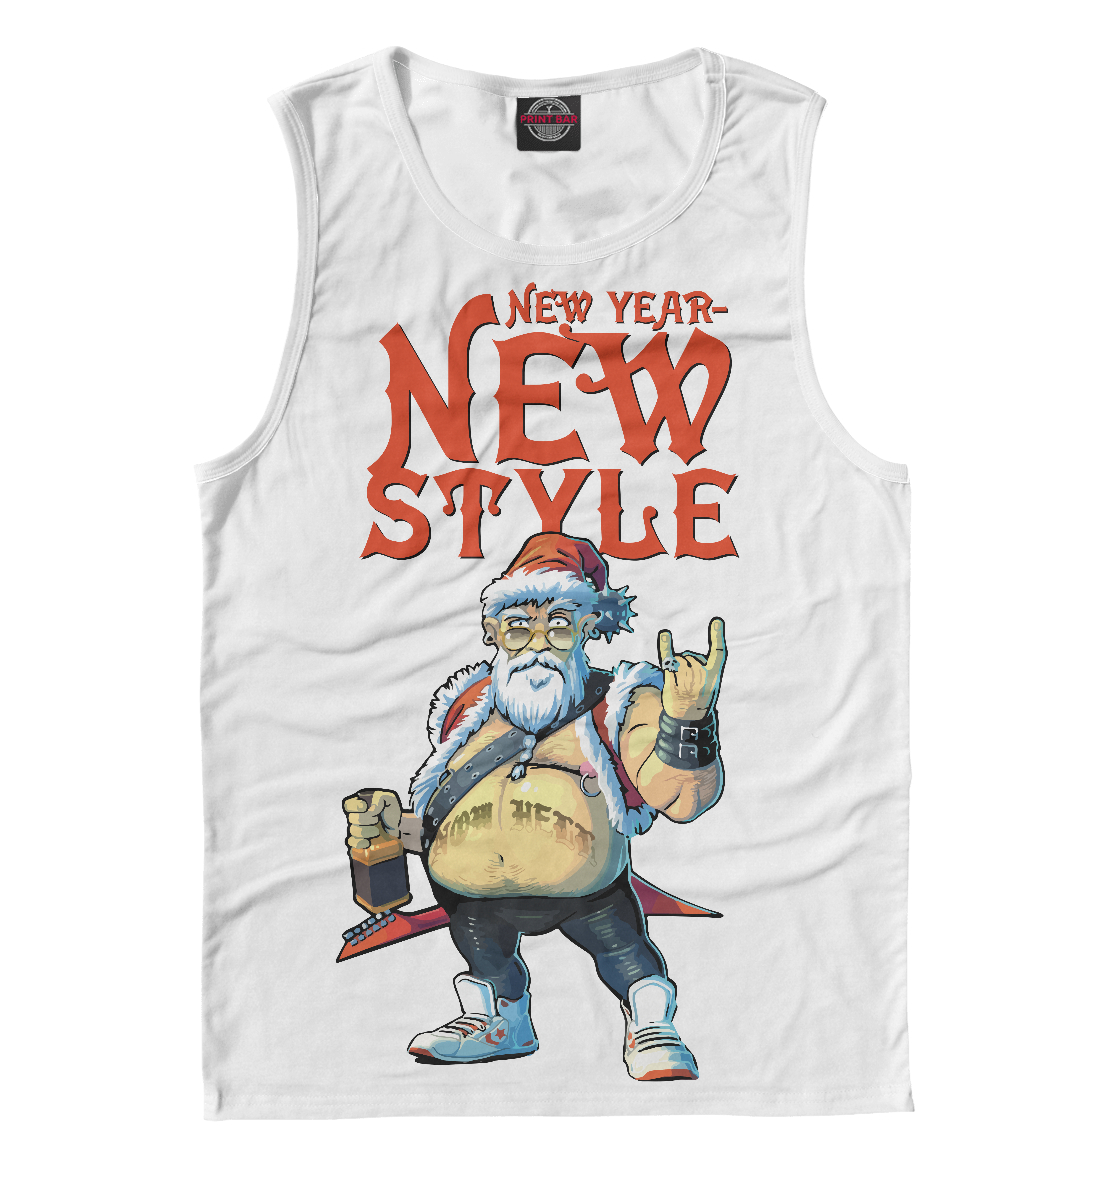 New Year - new style